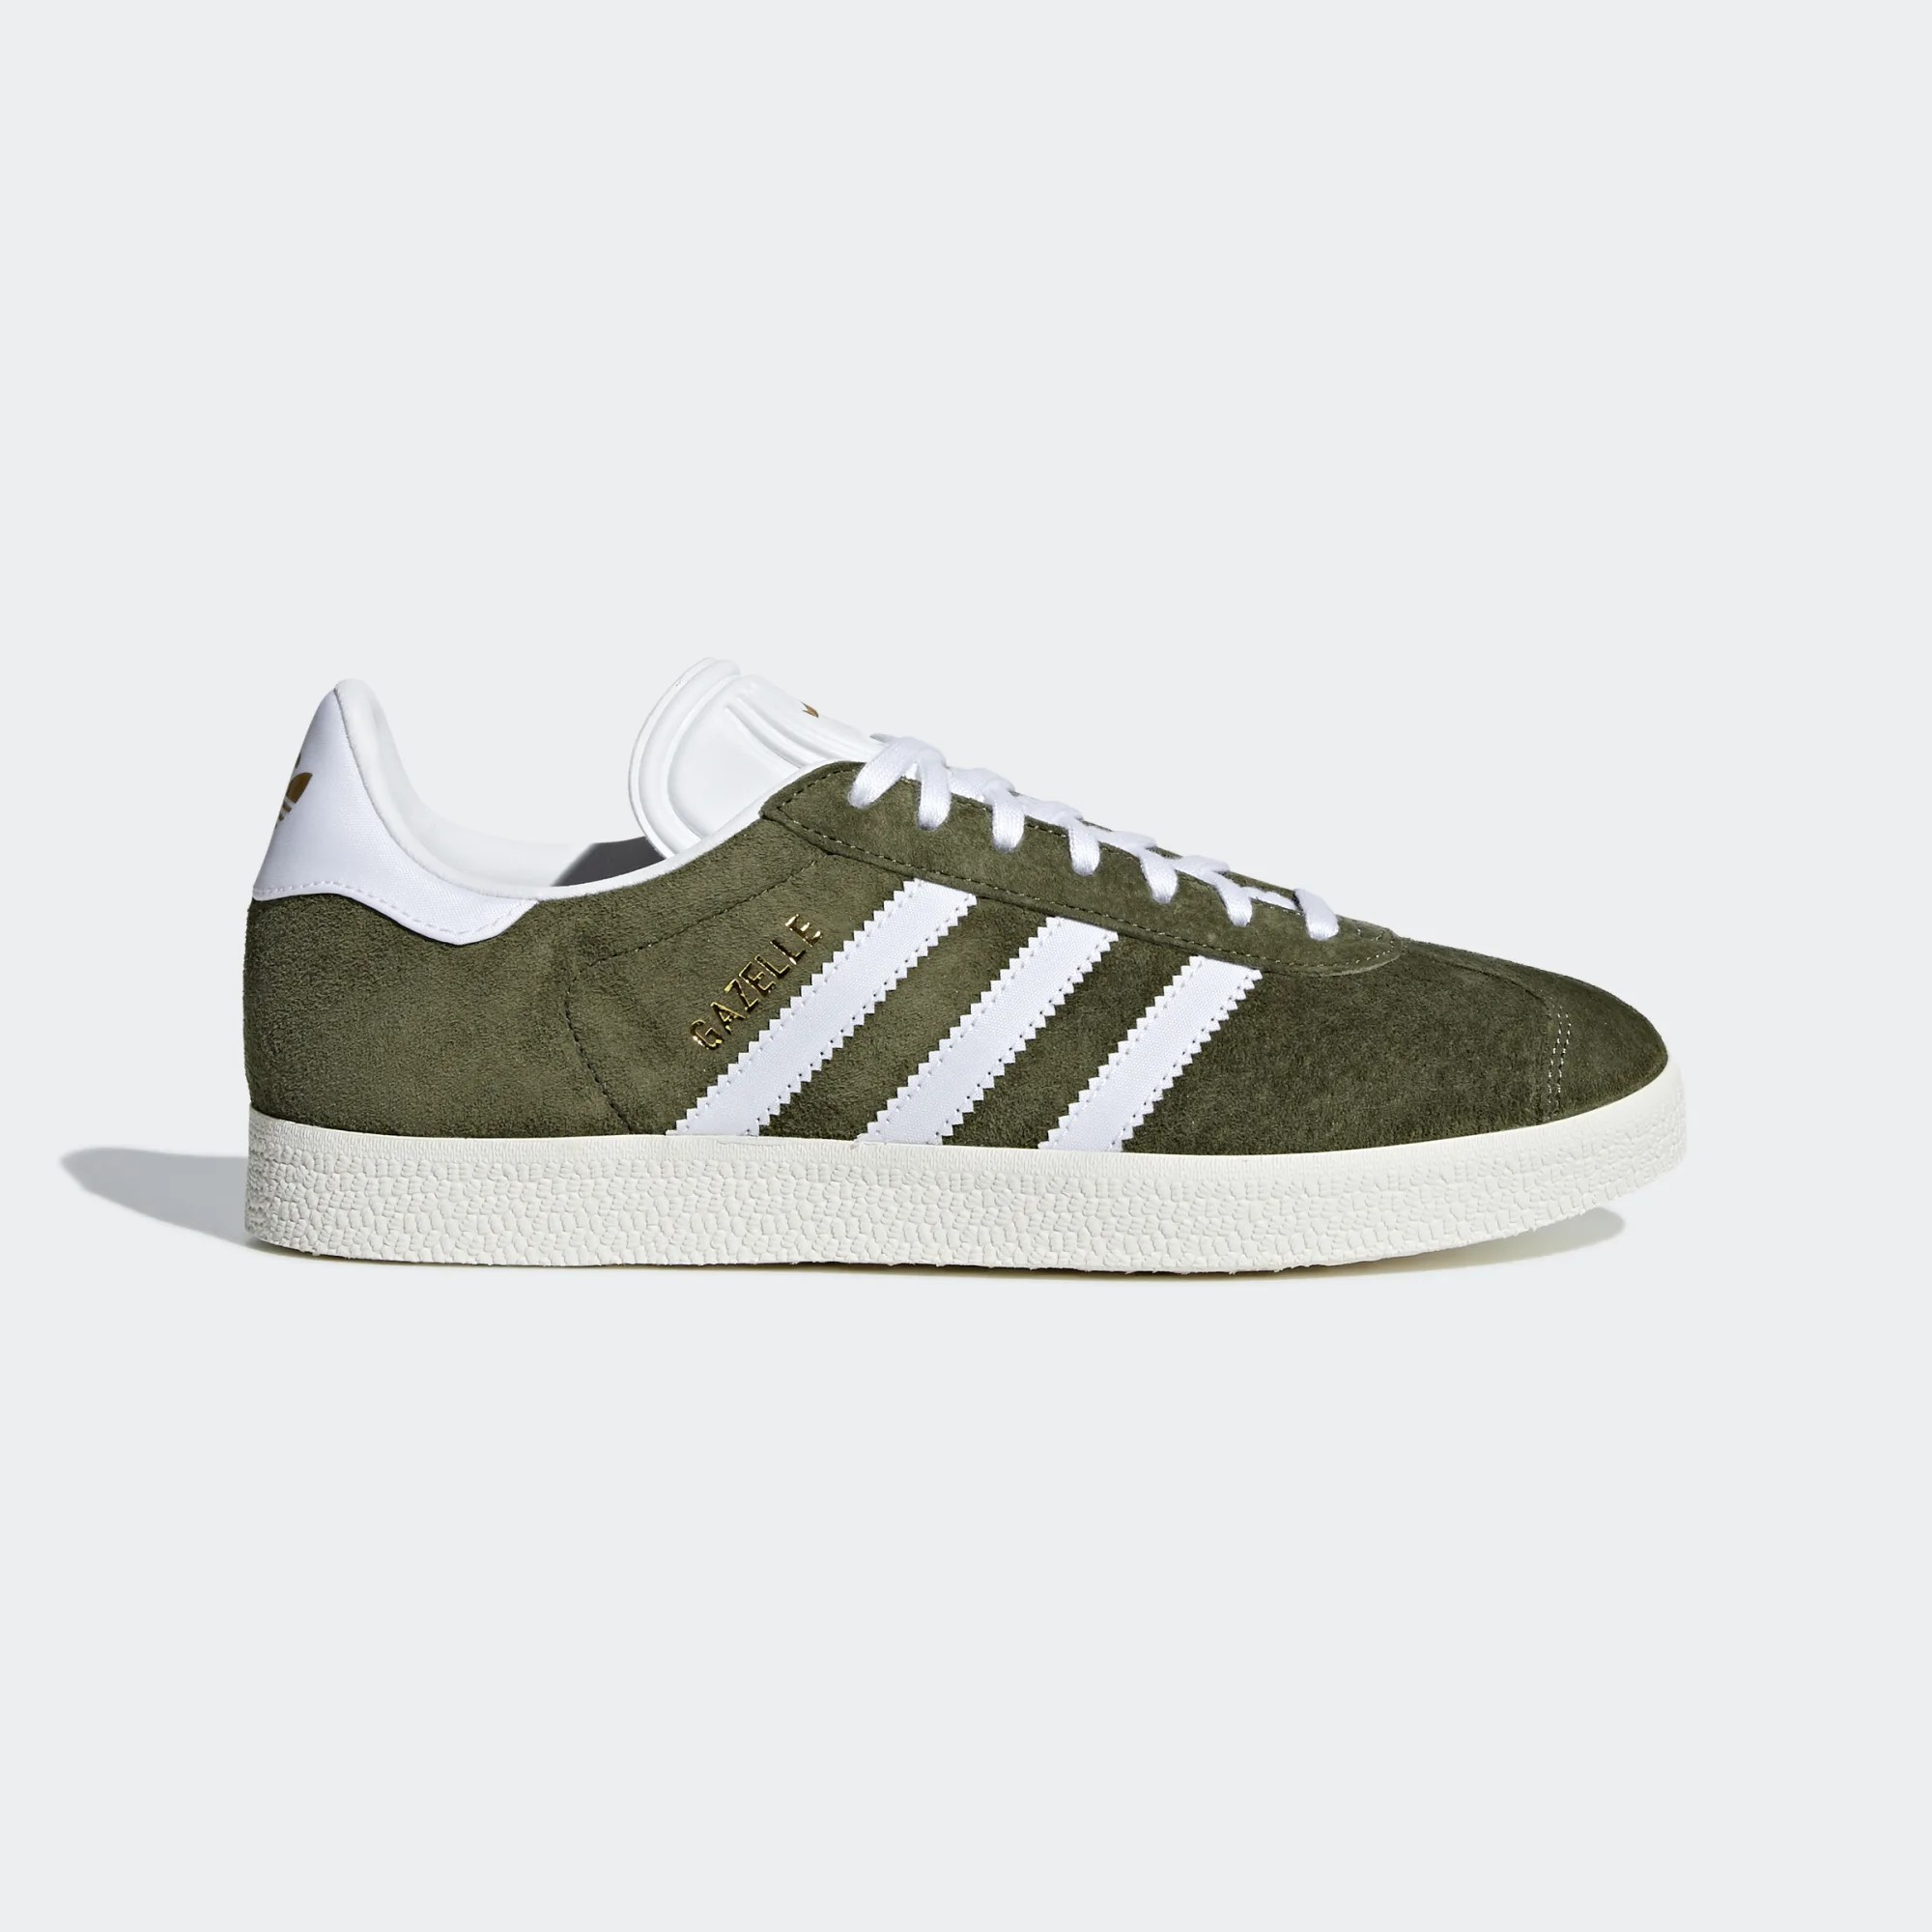 Adidas CG6062 Women Gazelle Casual Shoes Khaki